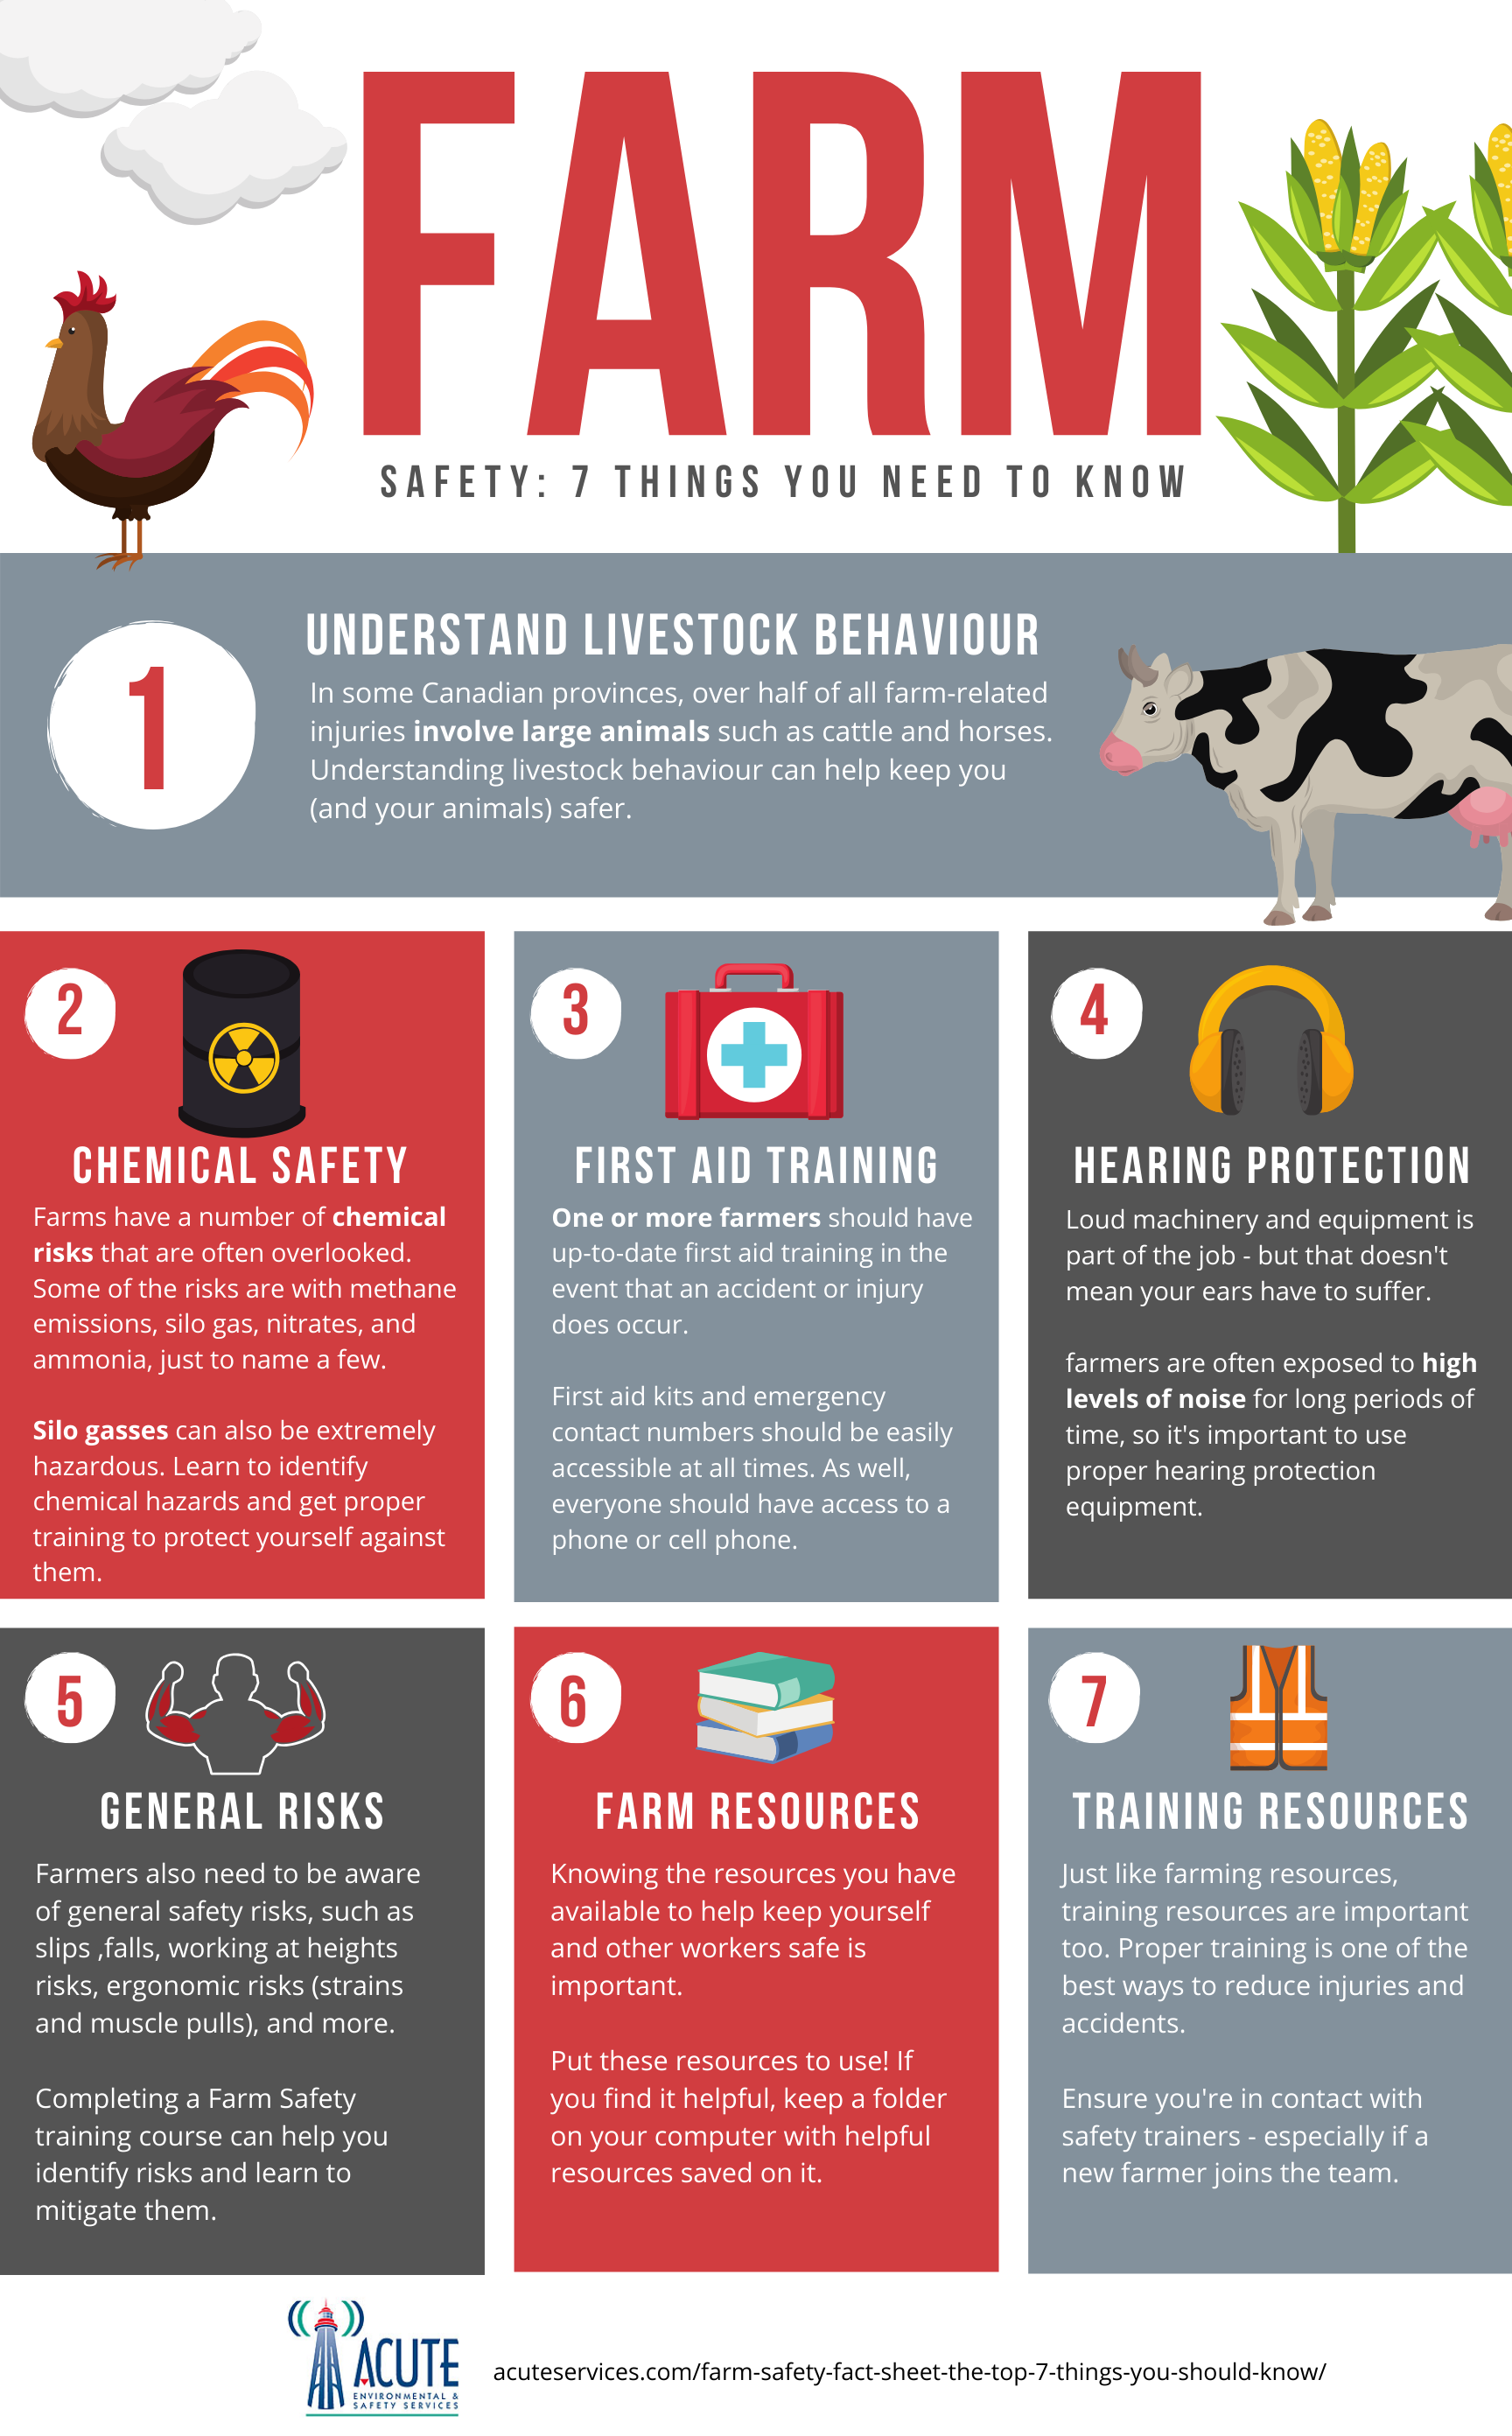 7 things you need to know about farm safety and